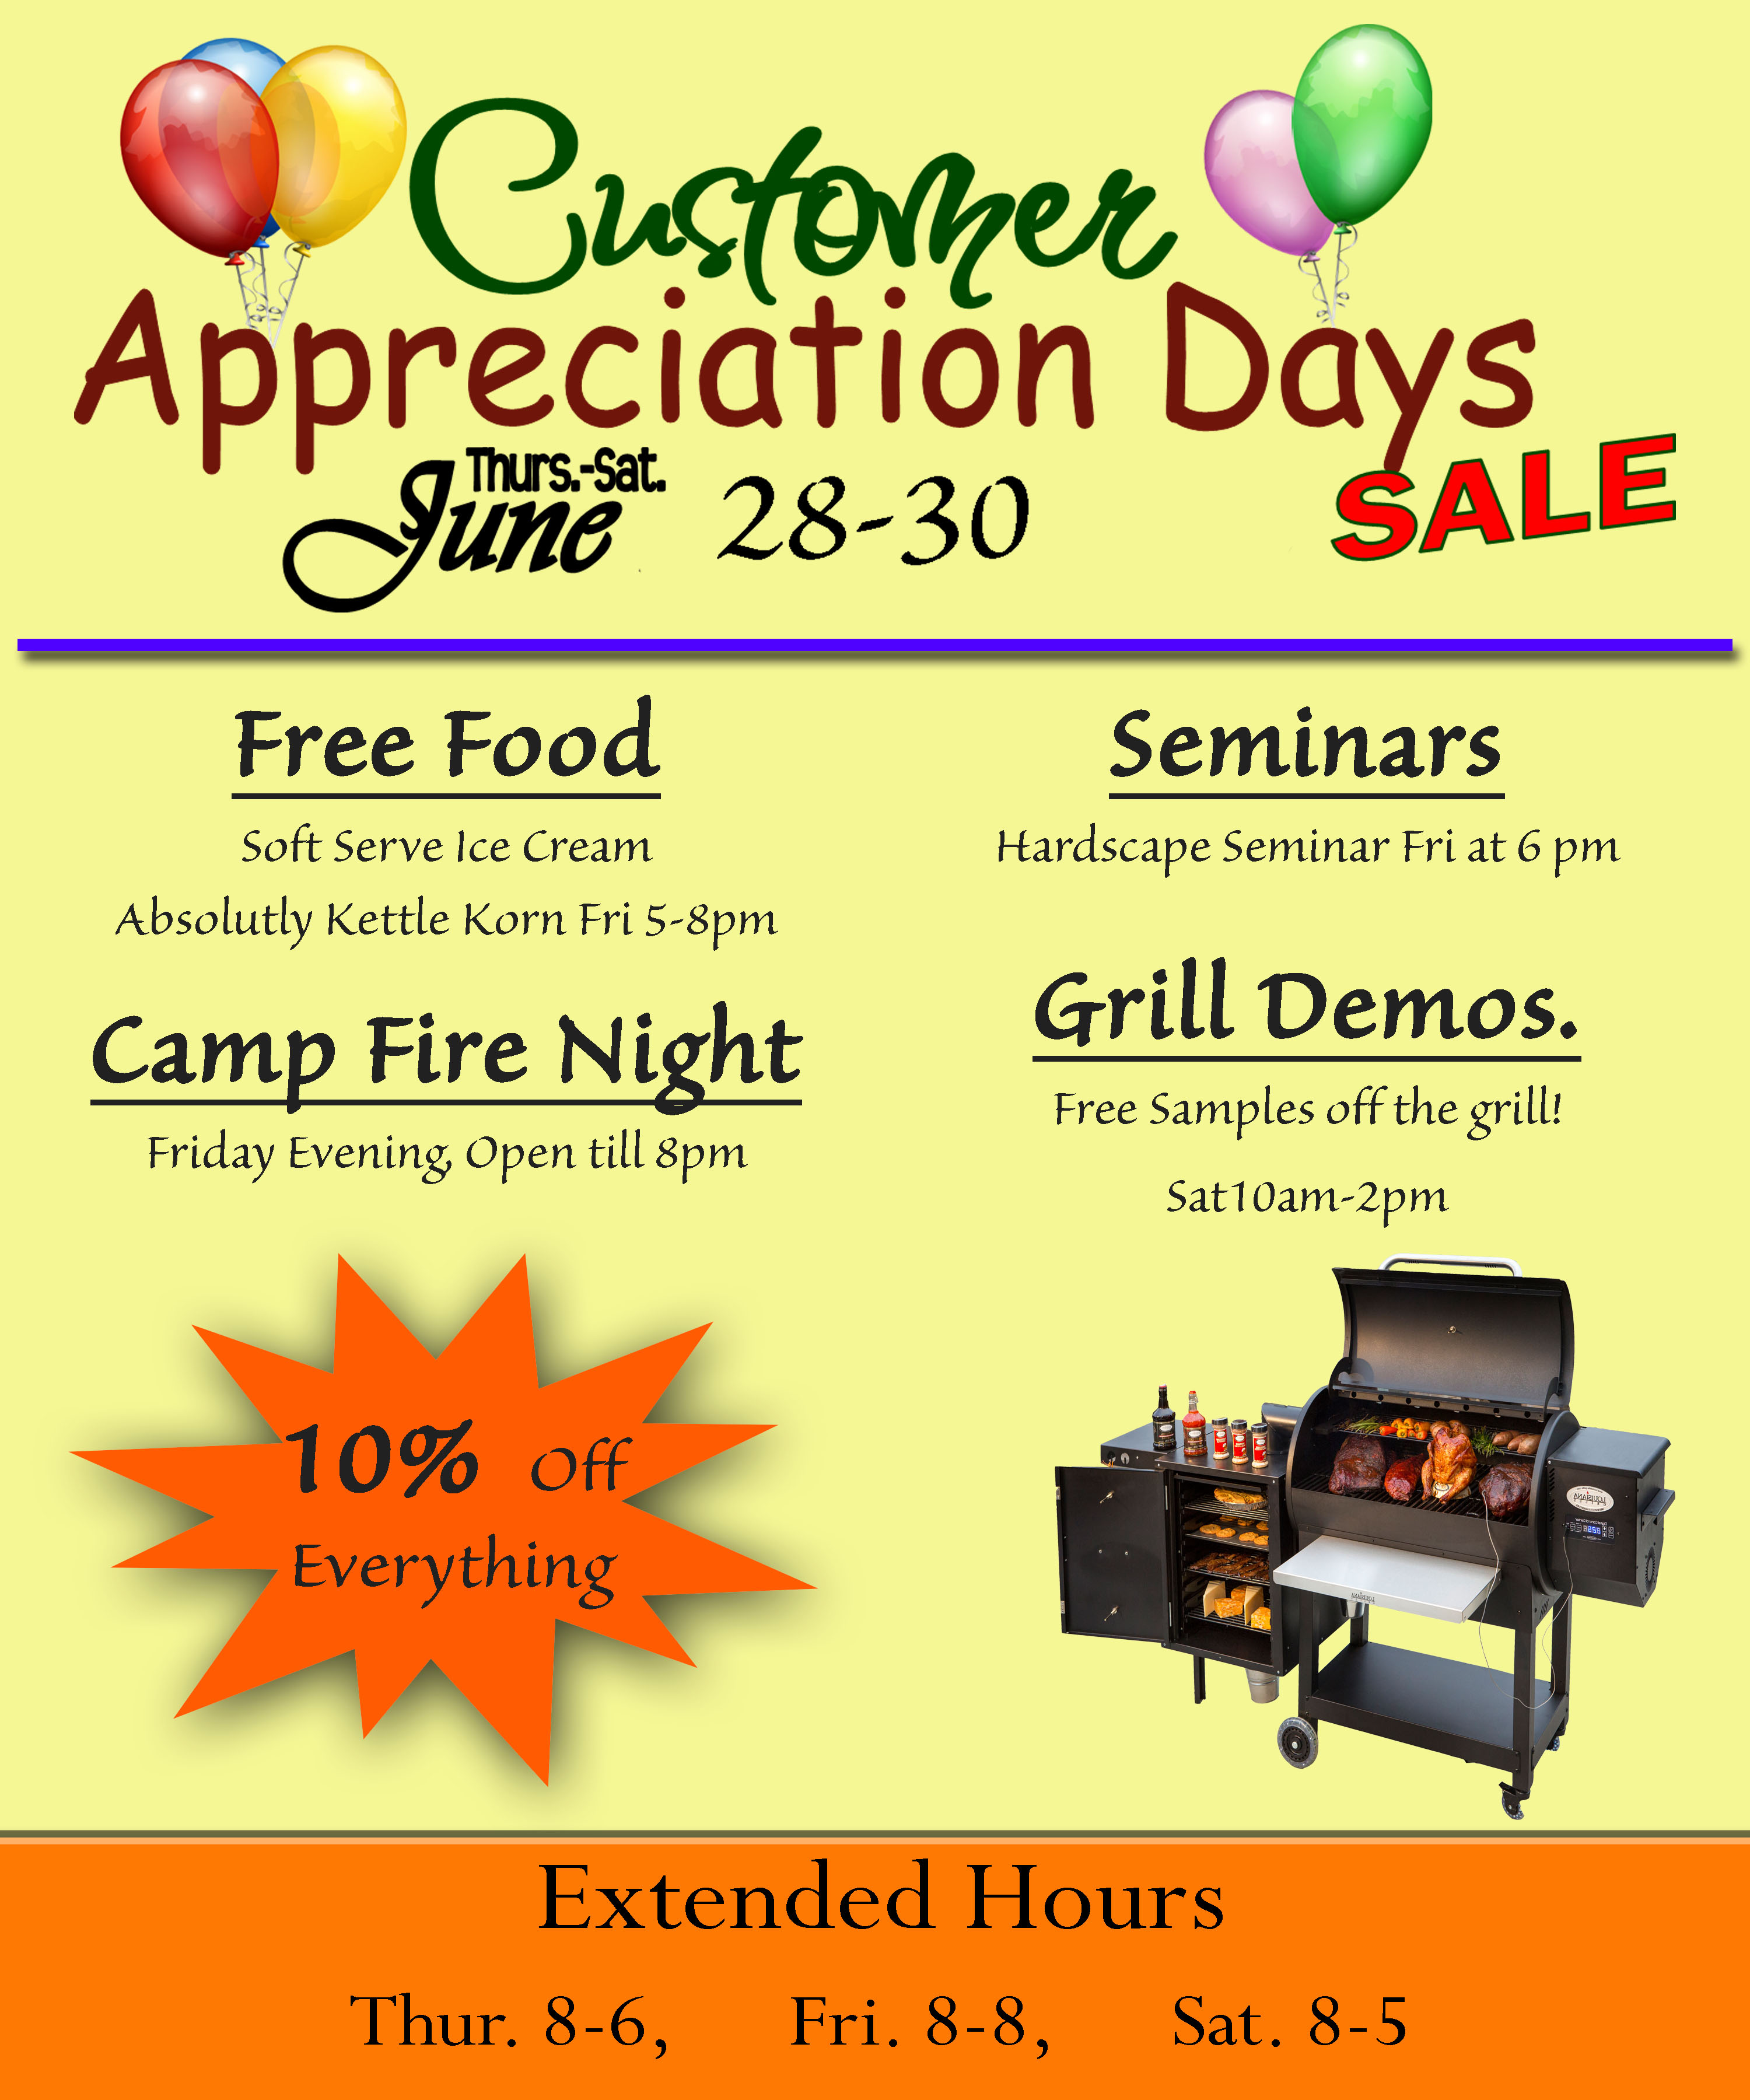 Customer-Appreciation-Days-Sales-and-Events